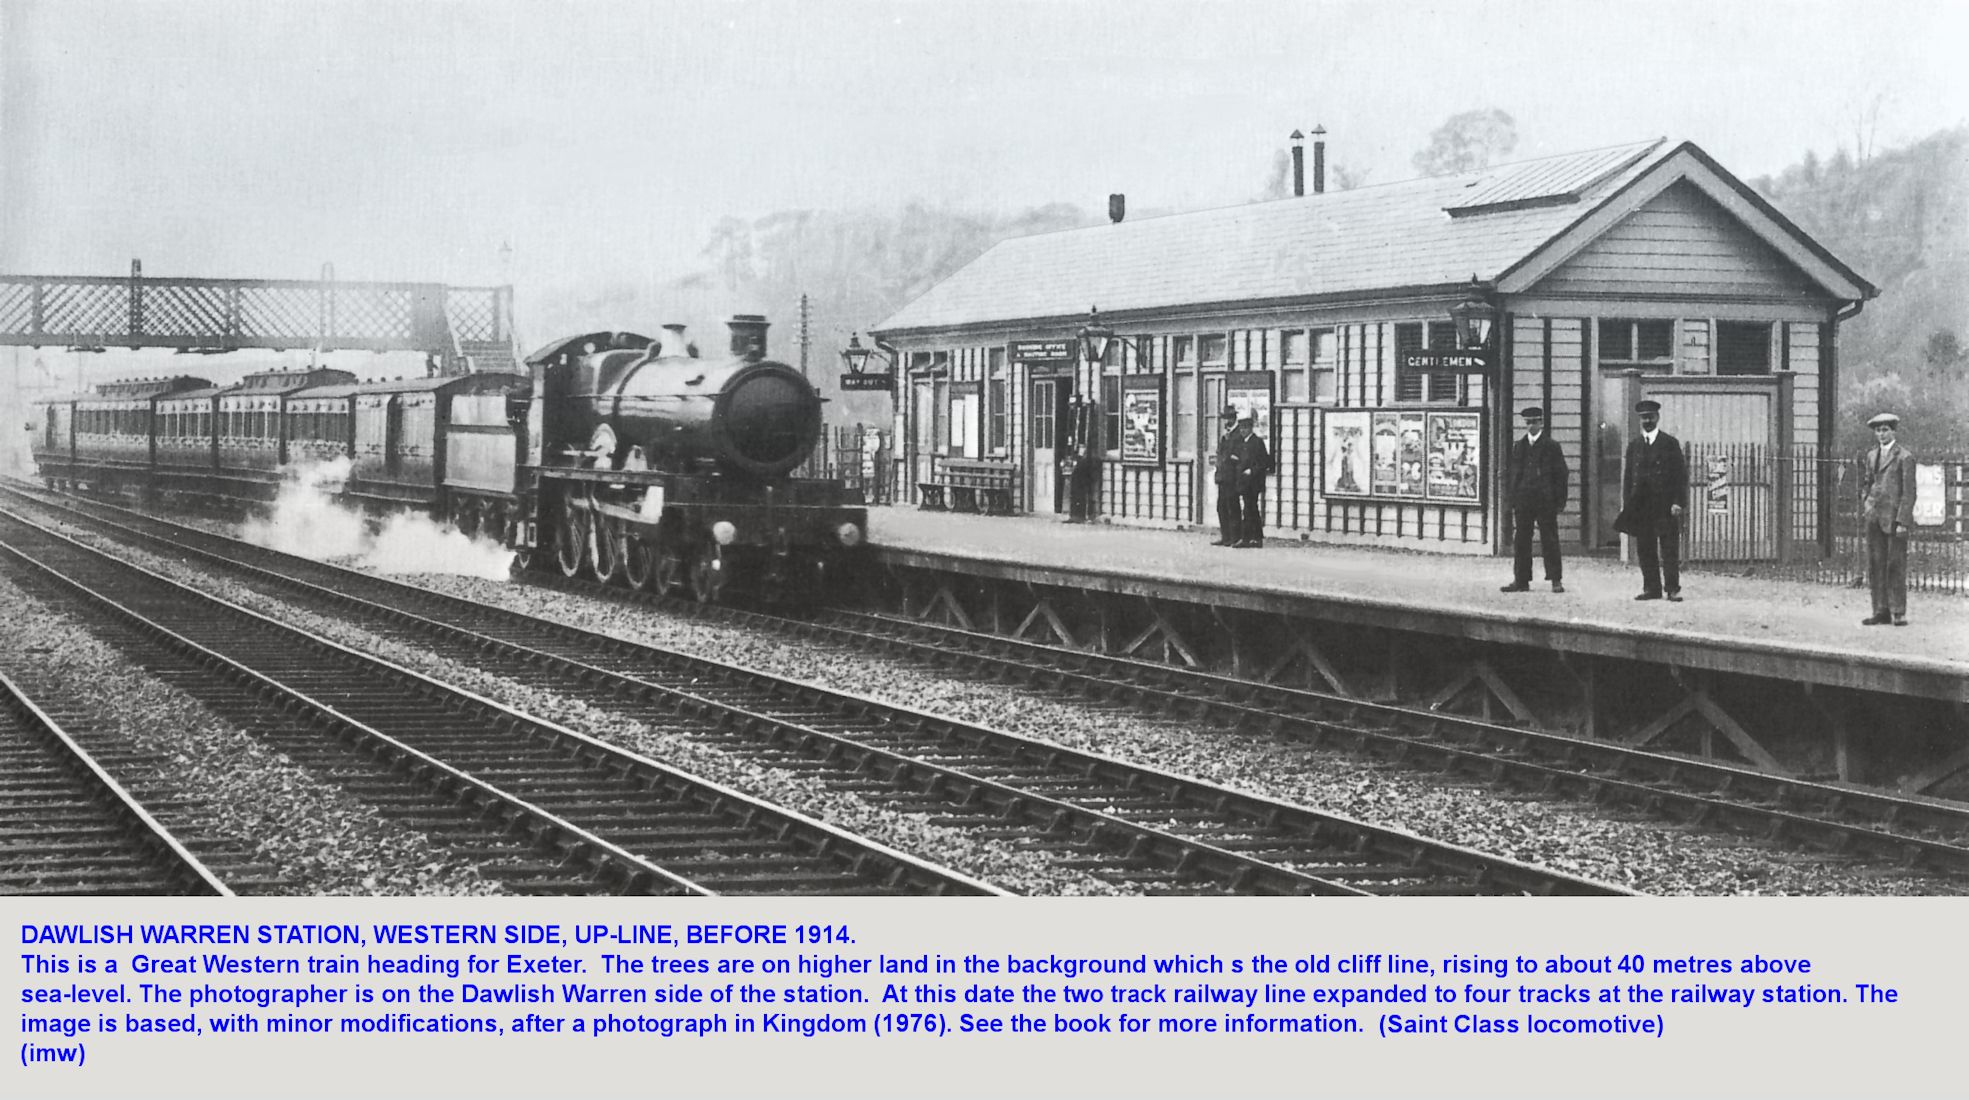 The station at Dawlish Warren, Devon, just prior to the First World War, 1914-18